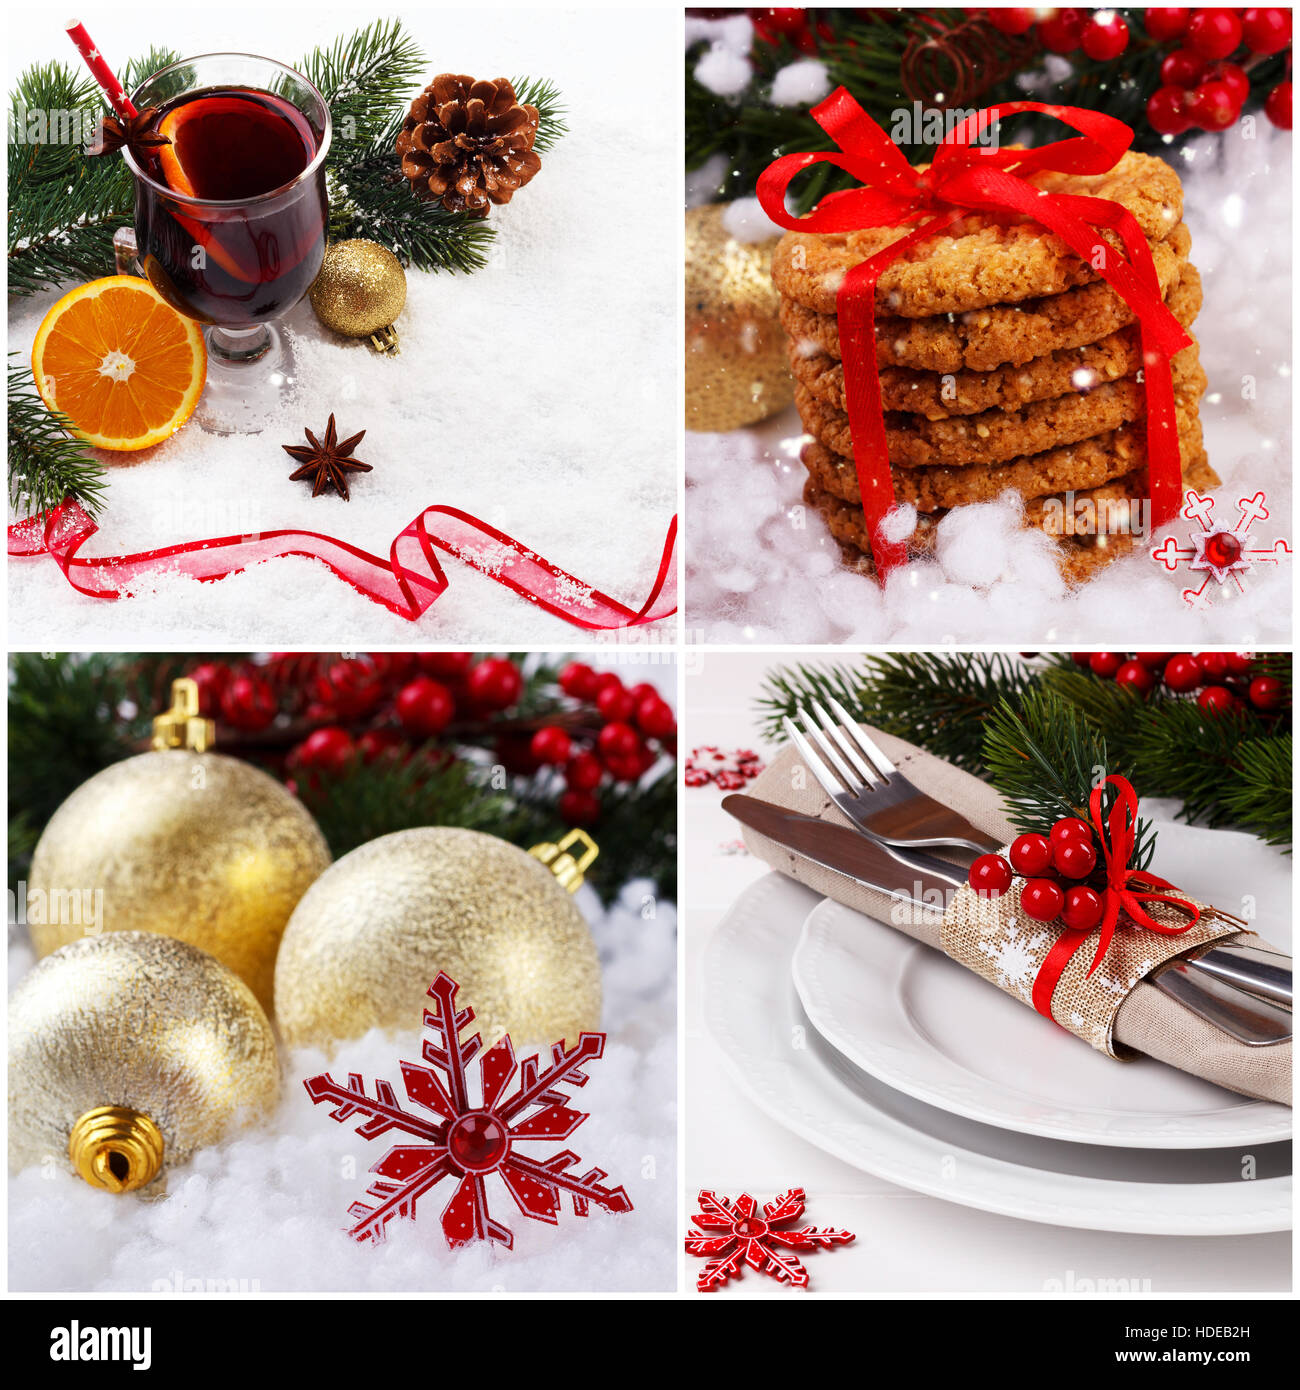 Retro Weihnachtsbilder.Collage Retro Stock Photos Collage Retro Stock Images Alamy